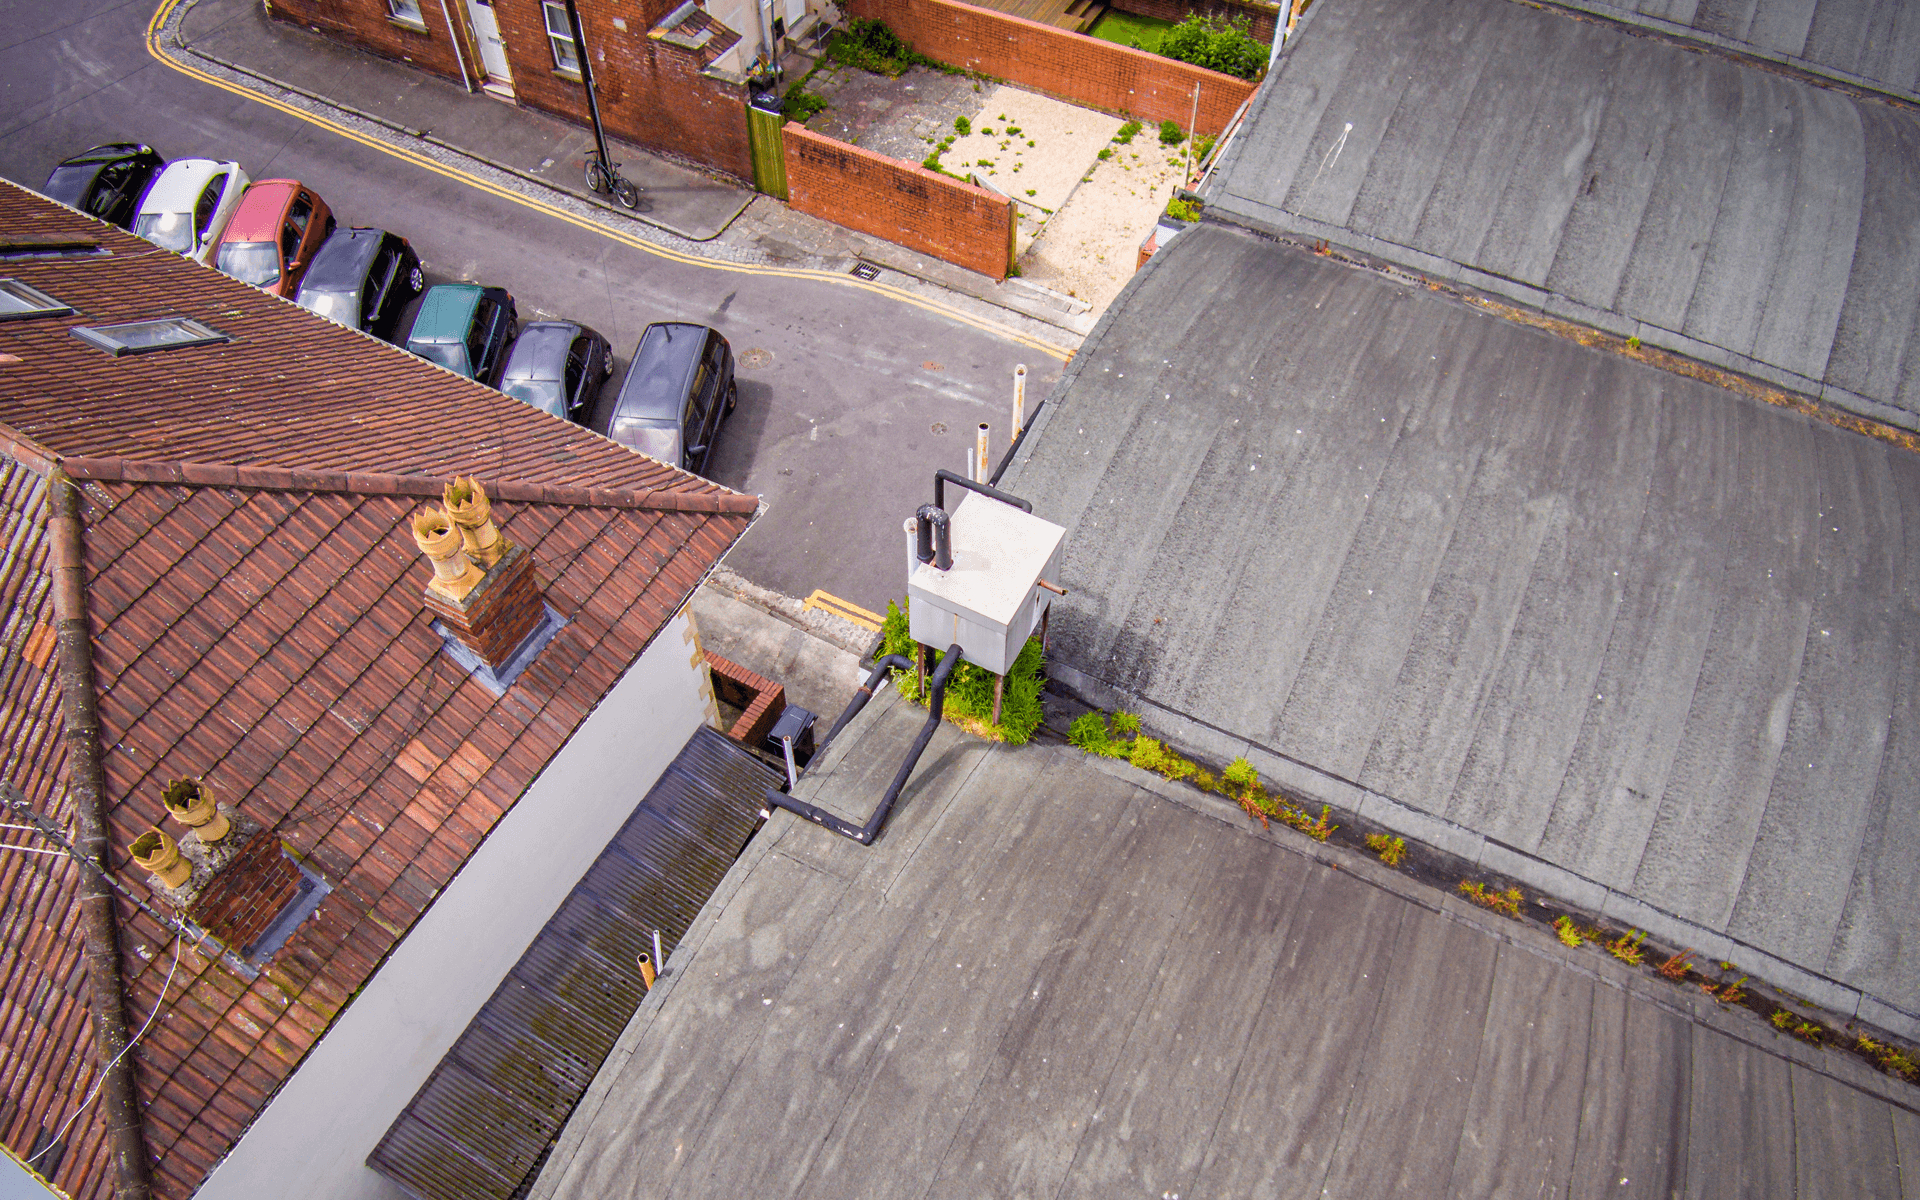 """DJI Inspire 1"" aerial drone photo for a roof survey in Bedminster, Bristol showing an air conditioning unit"